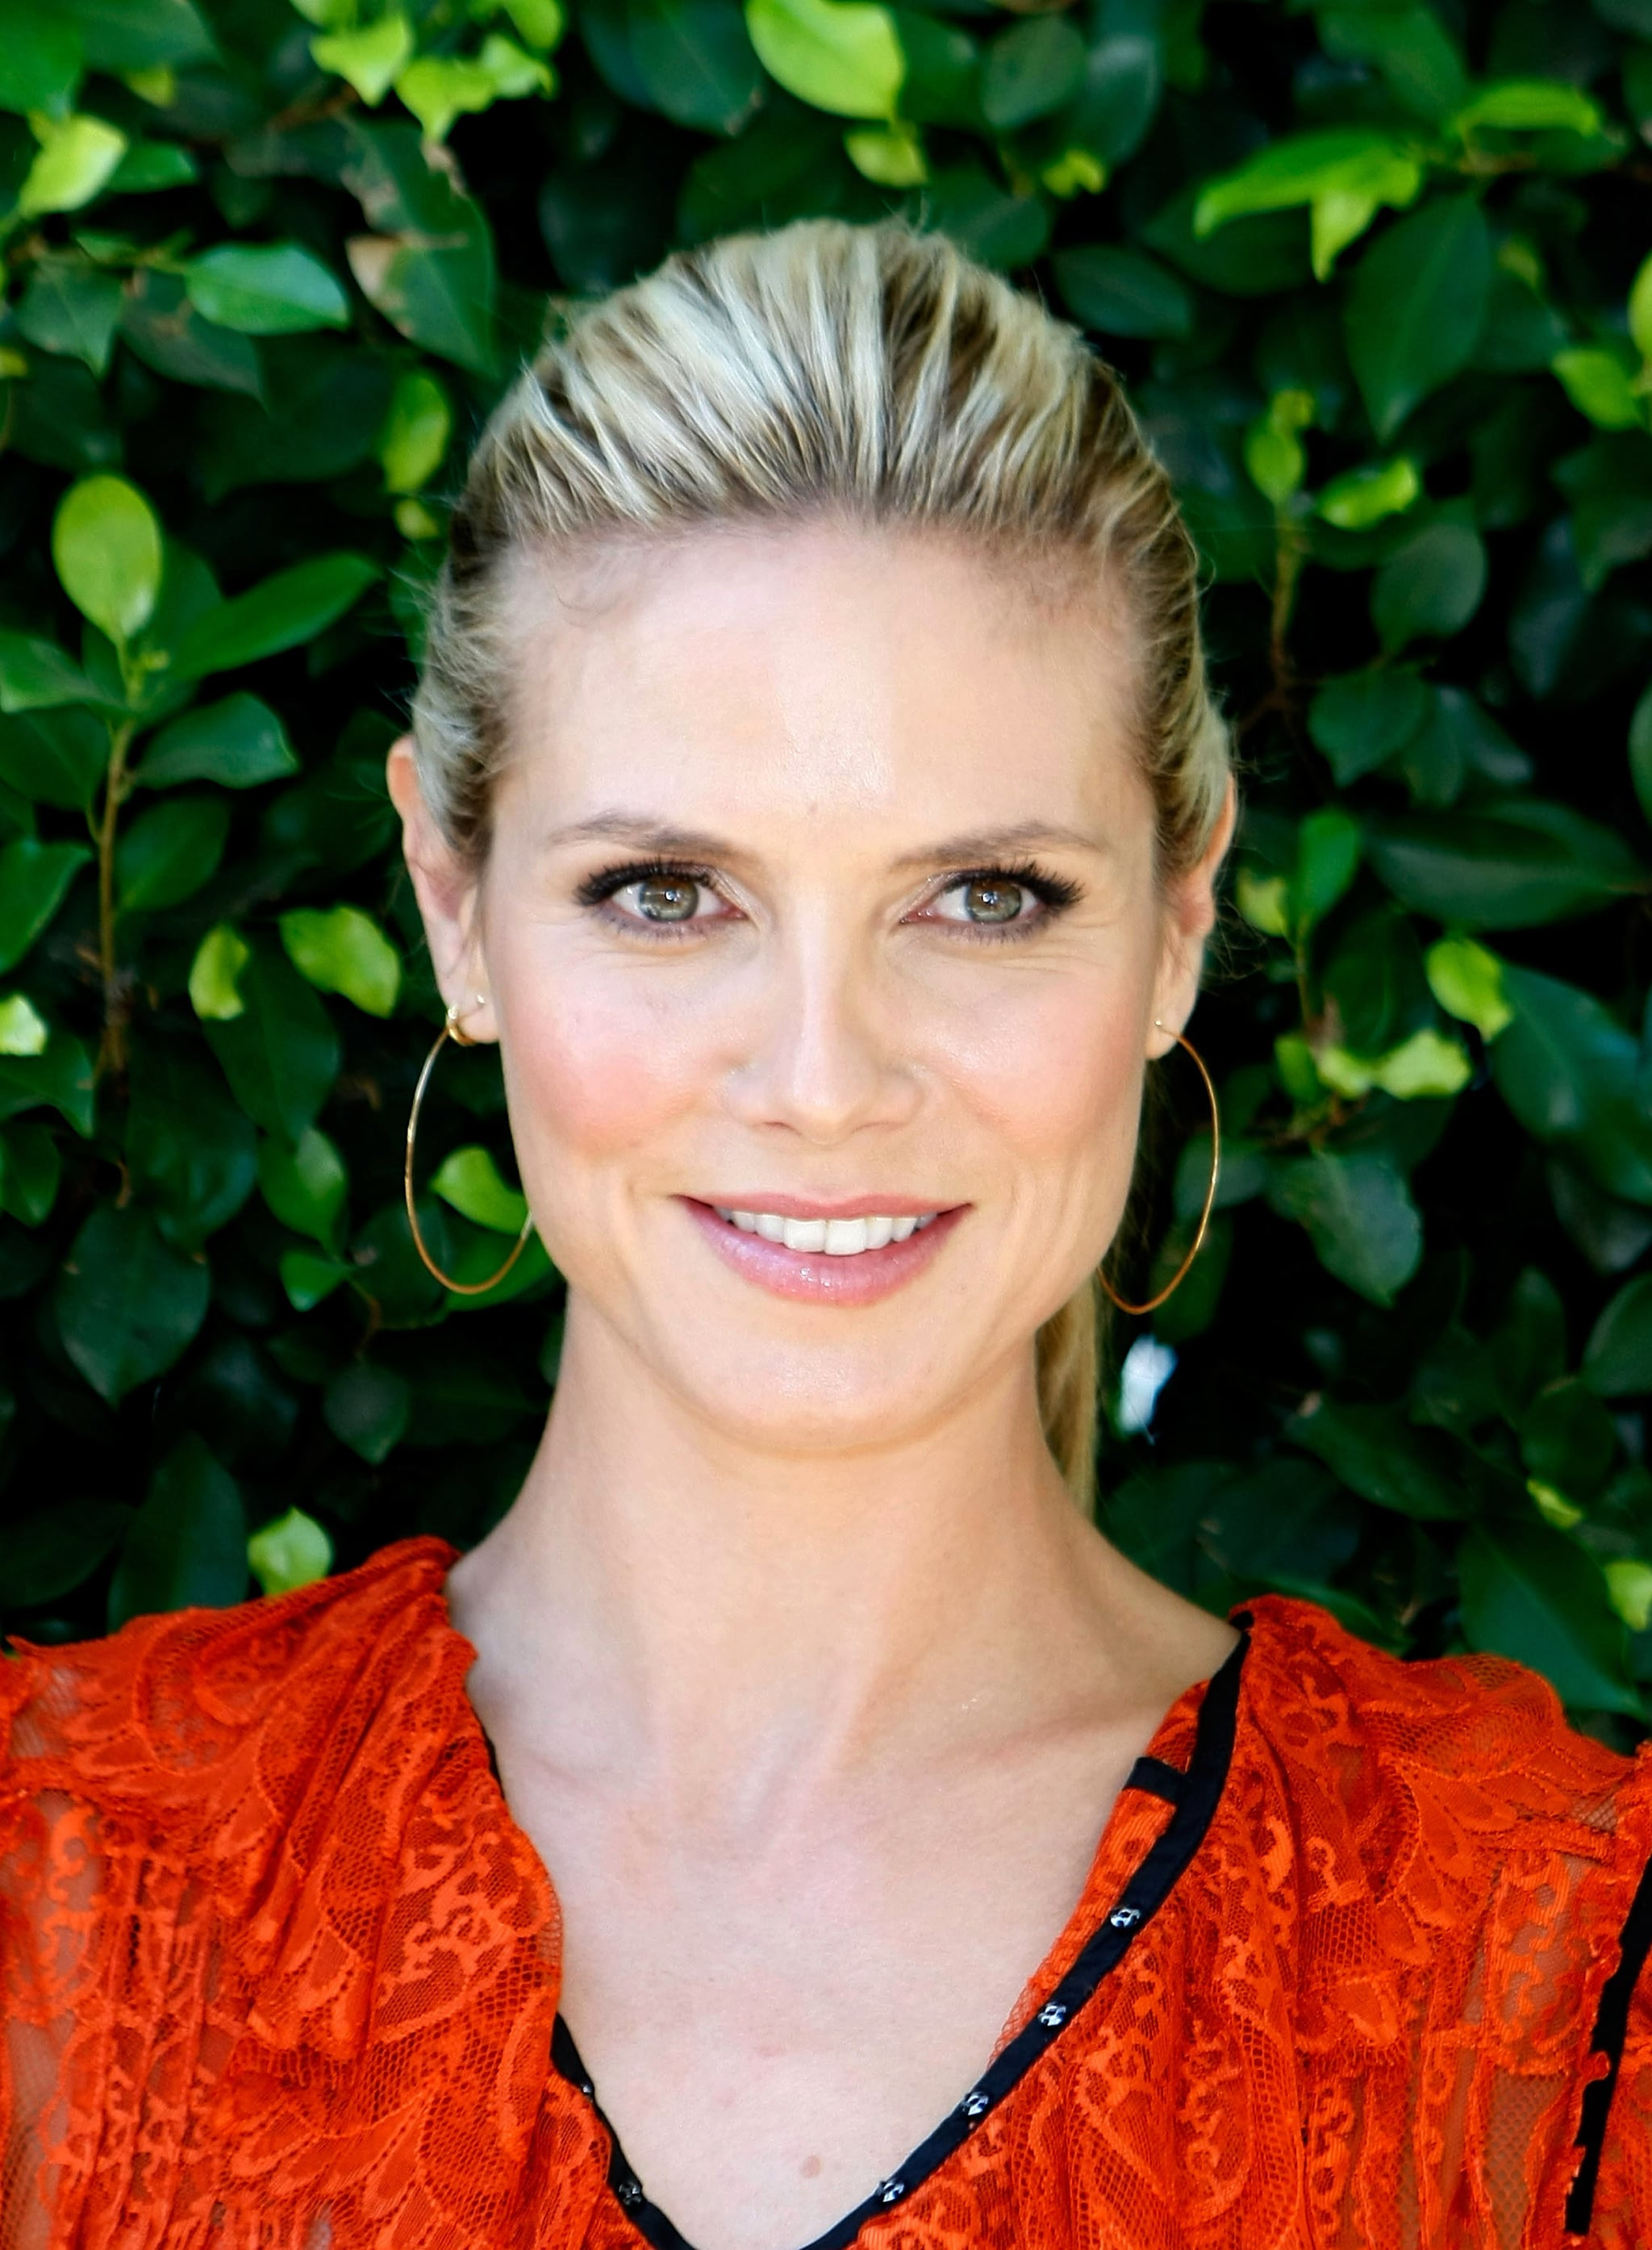 Photos Of Heidi Klum At The Women S Conference And Very